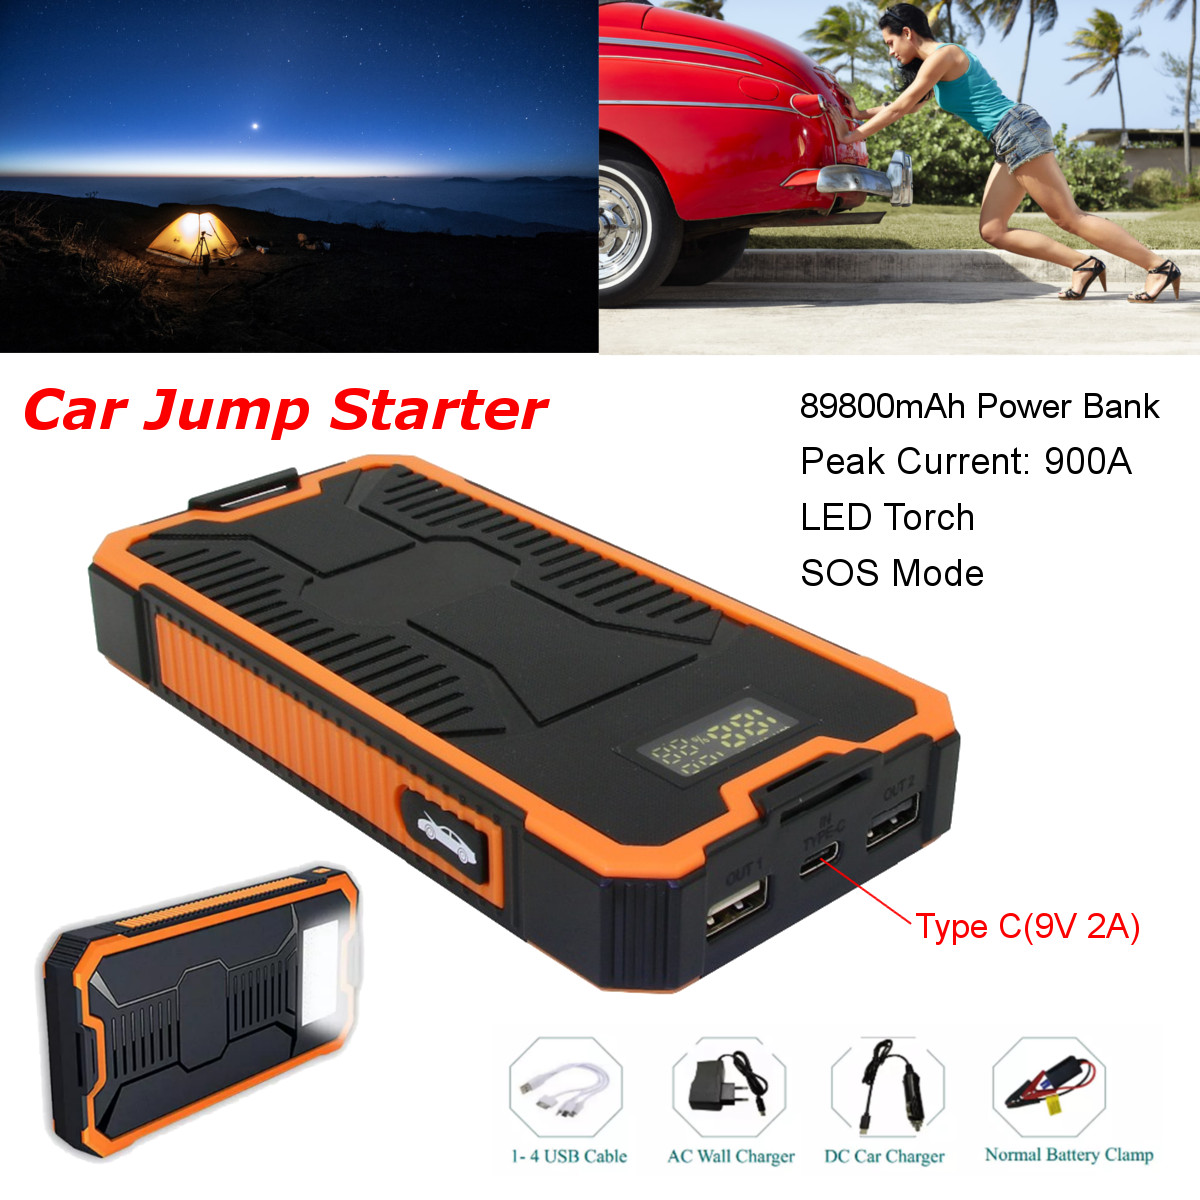 все цены на 89800mAh Car Jump Starter Power Bank Portable Car Battery Booster Charger 9V 2A Starting Device Type C Dual USB 3.0 Fast Charger онлайн